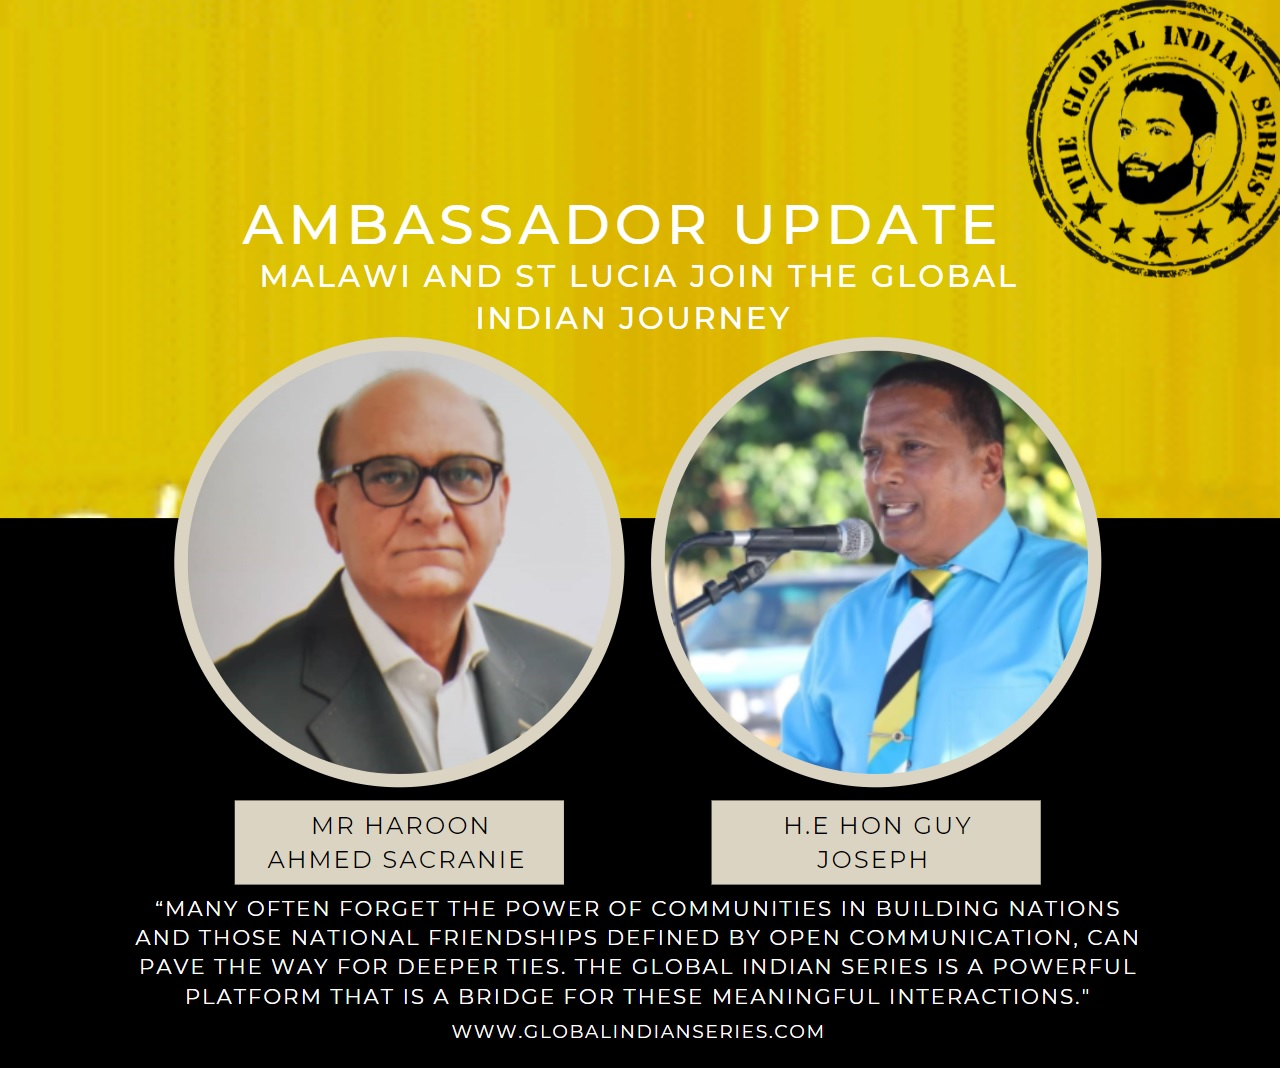 Haroon Sacranie Malawi and Guy Joseph St Lucia join the Global Indian Series